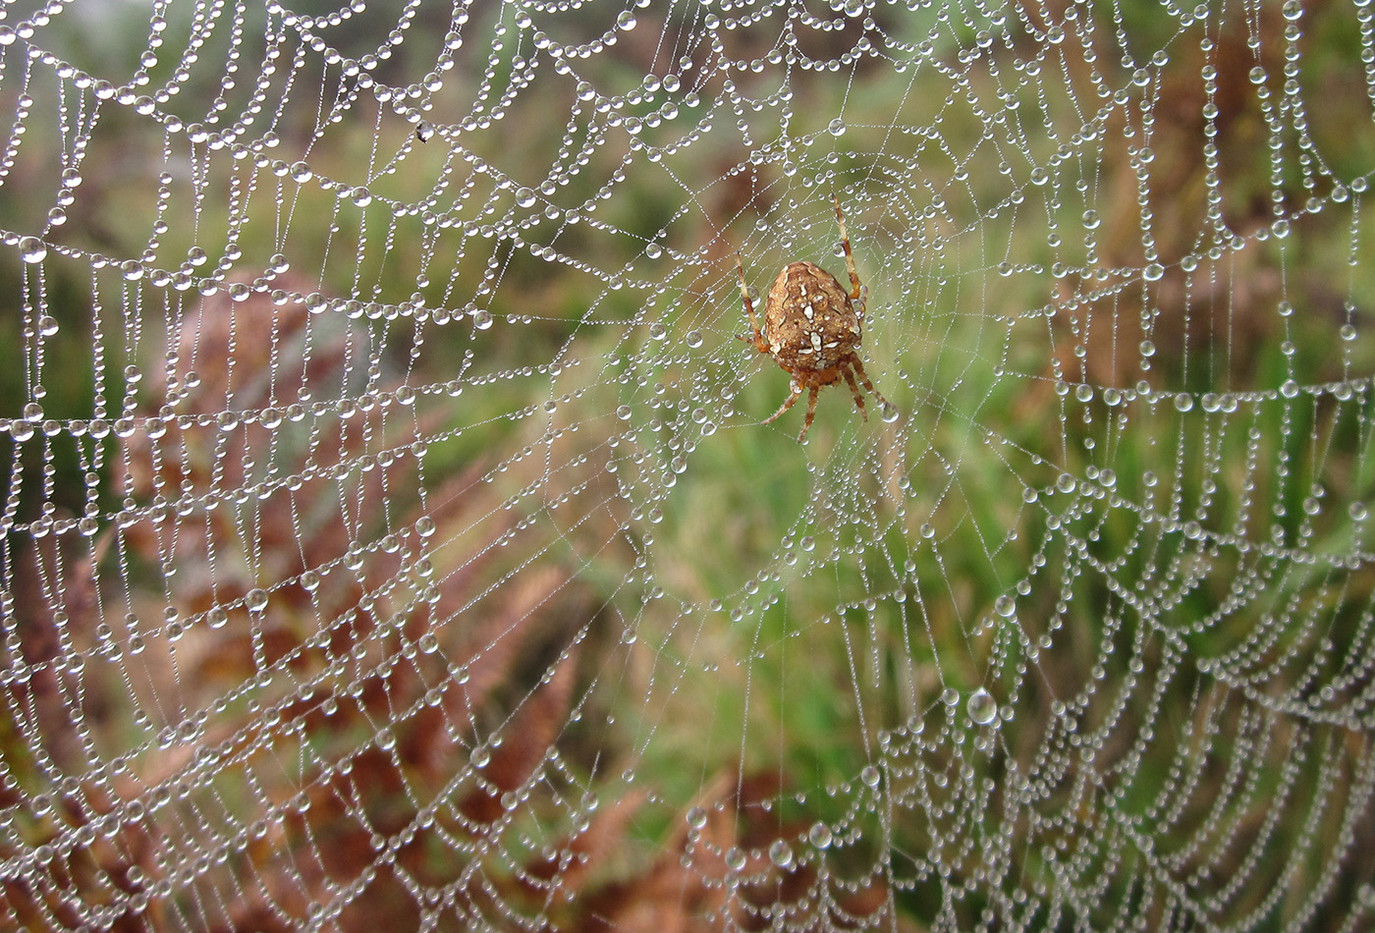 13 ARANEUS DIADEMATUS SPIDER IN DEW-LADEN WEB by Colin Burgess